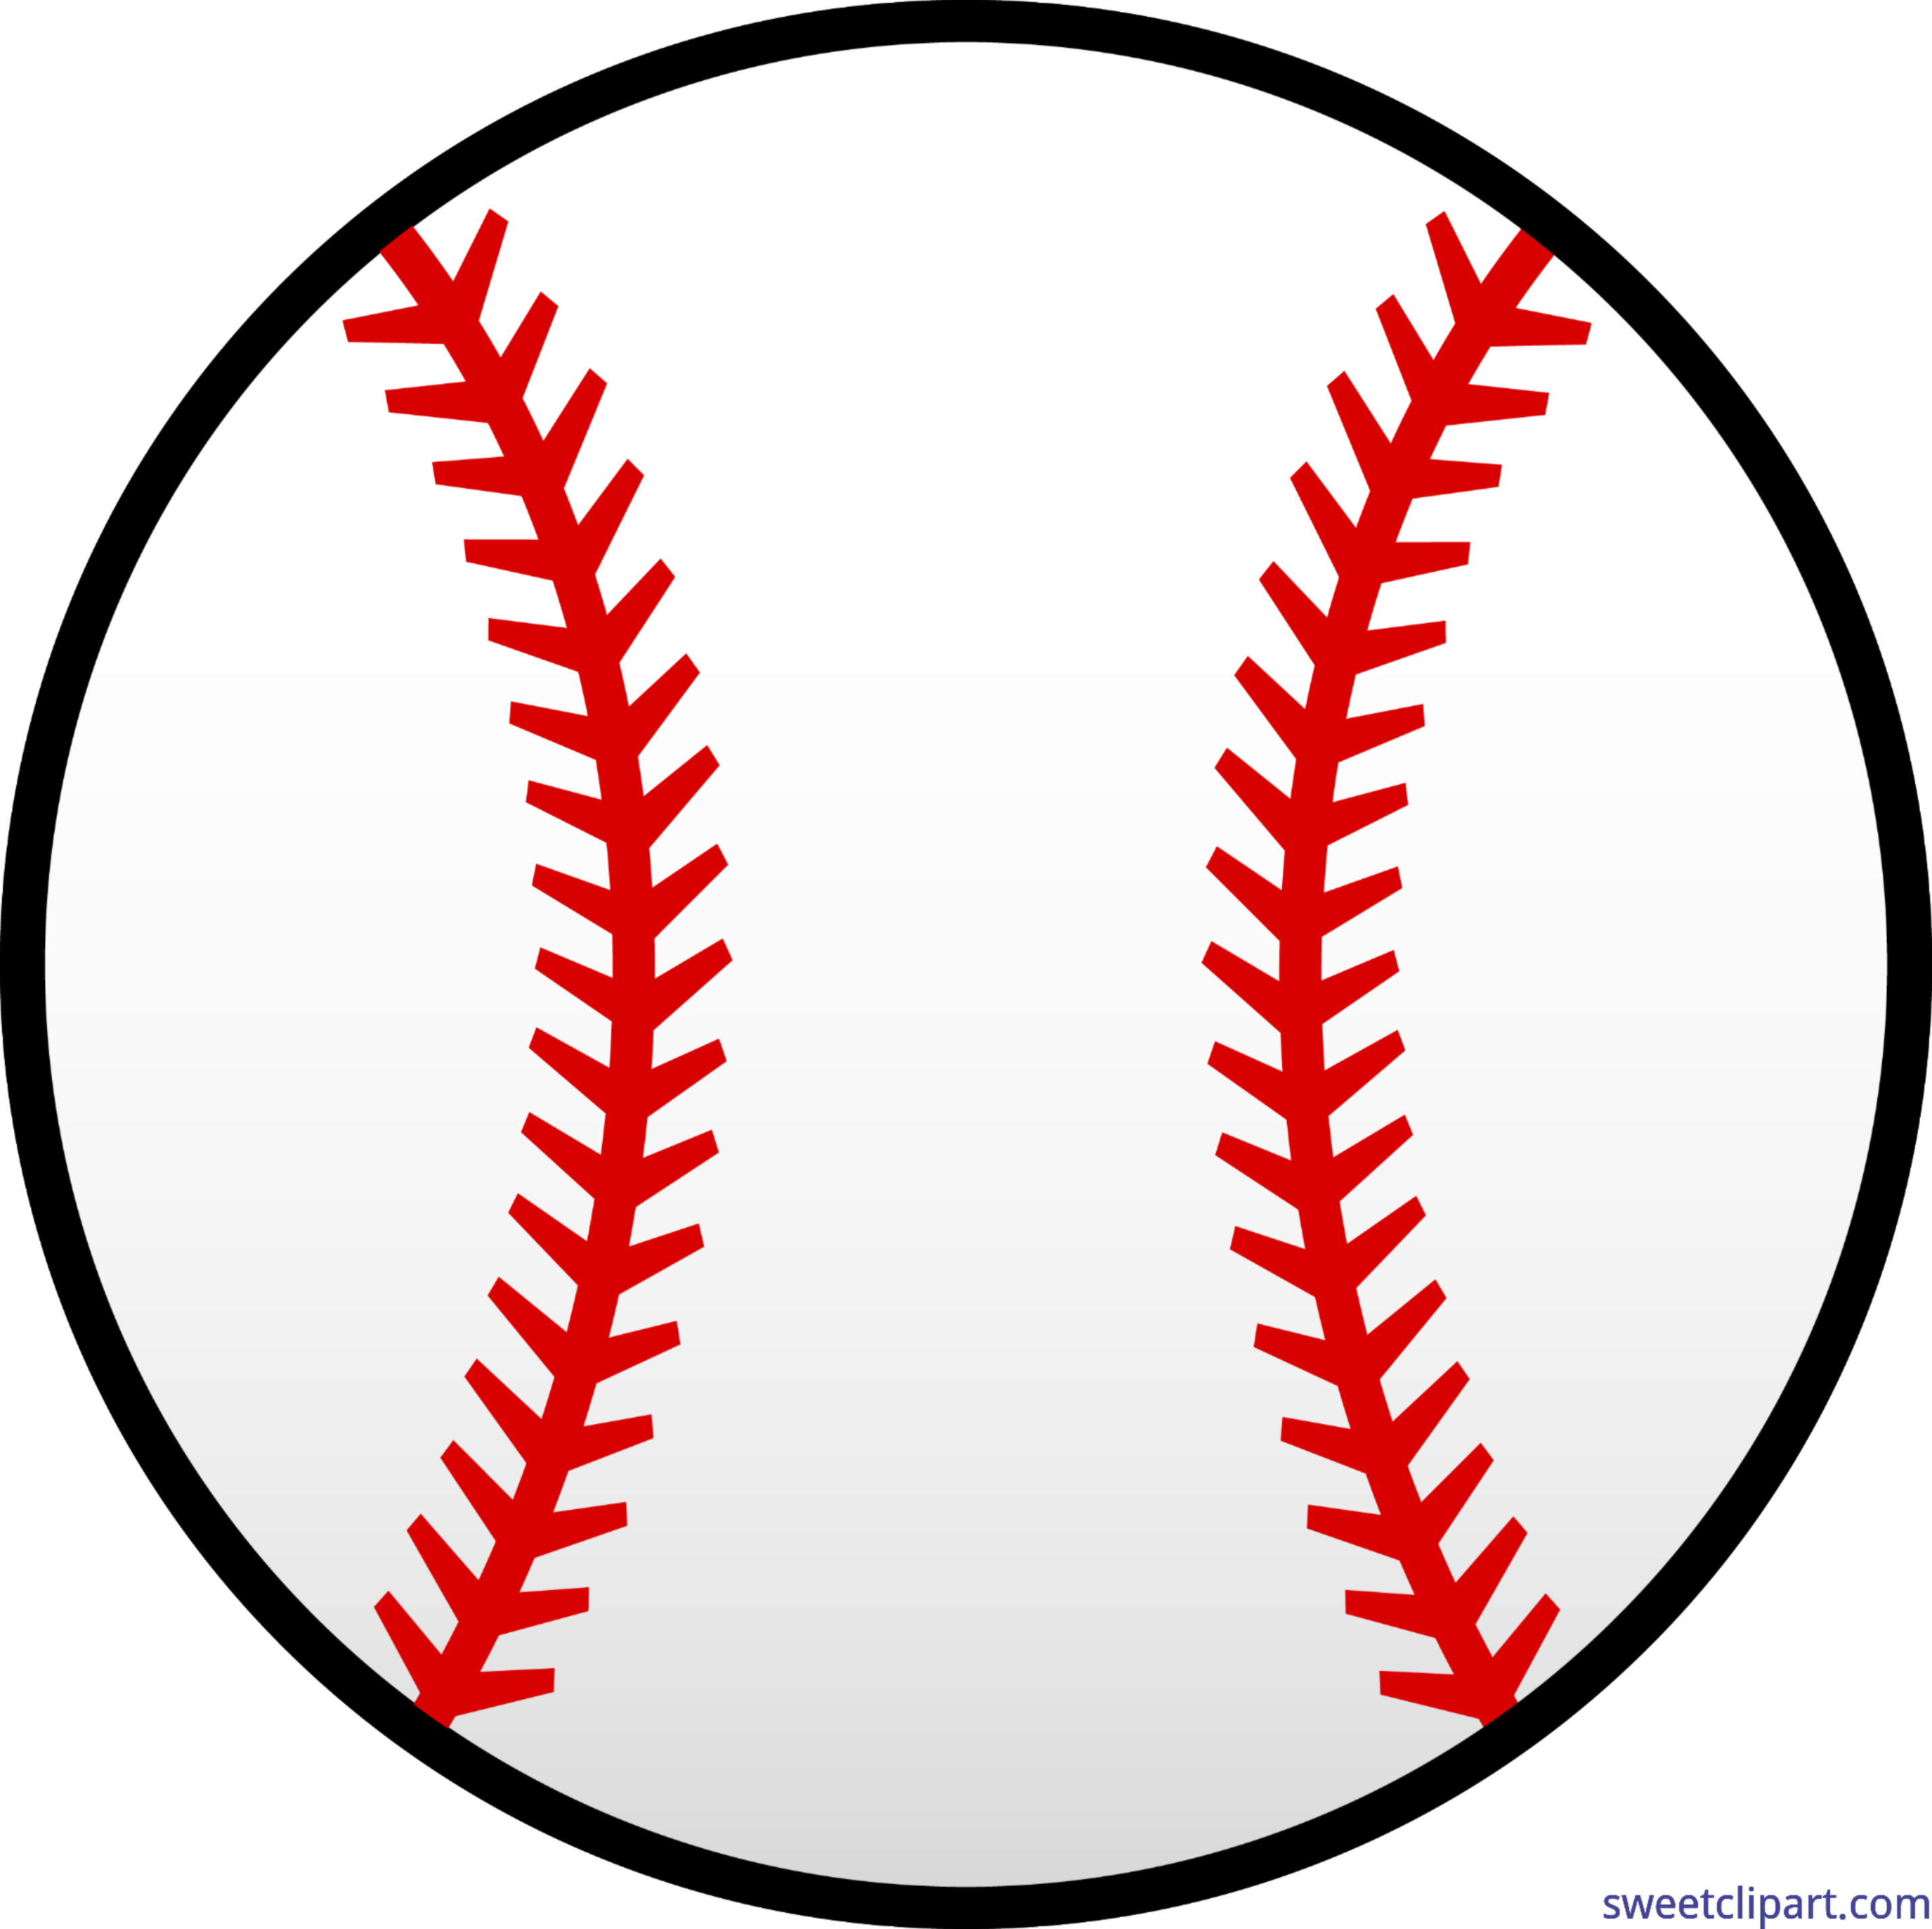 Baseball team clipart svg transparent download Red and White Baseball Clip Art - Sweet Clip Art svg transparent download